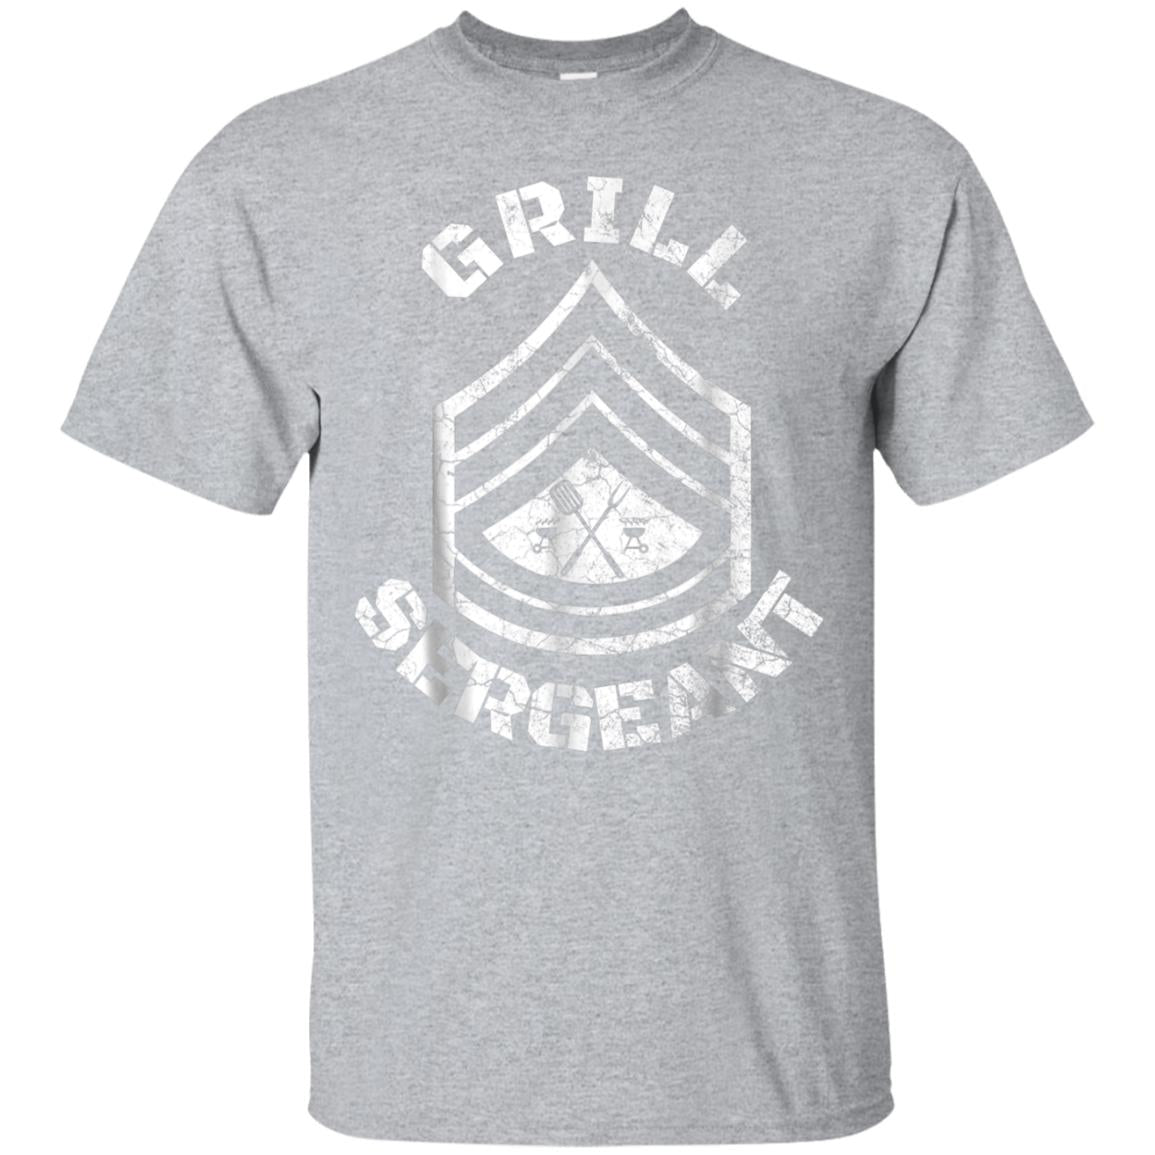 GRILL SERGEANT Shirt Funny Grilling BBQ Dad Father's Day Tee 99promocode